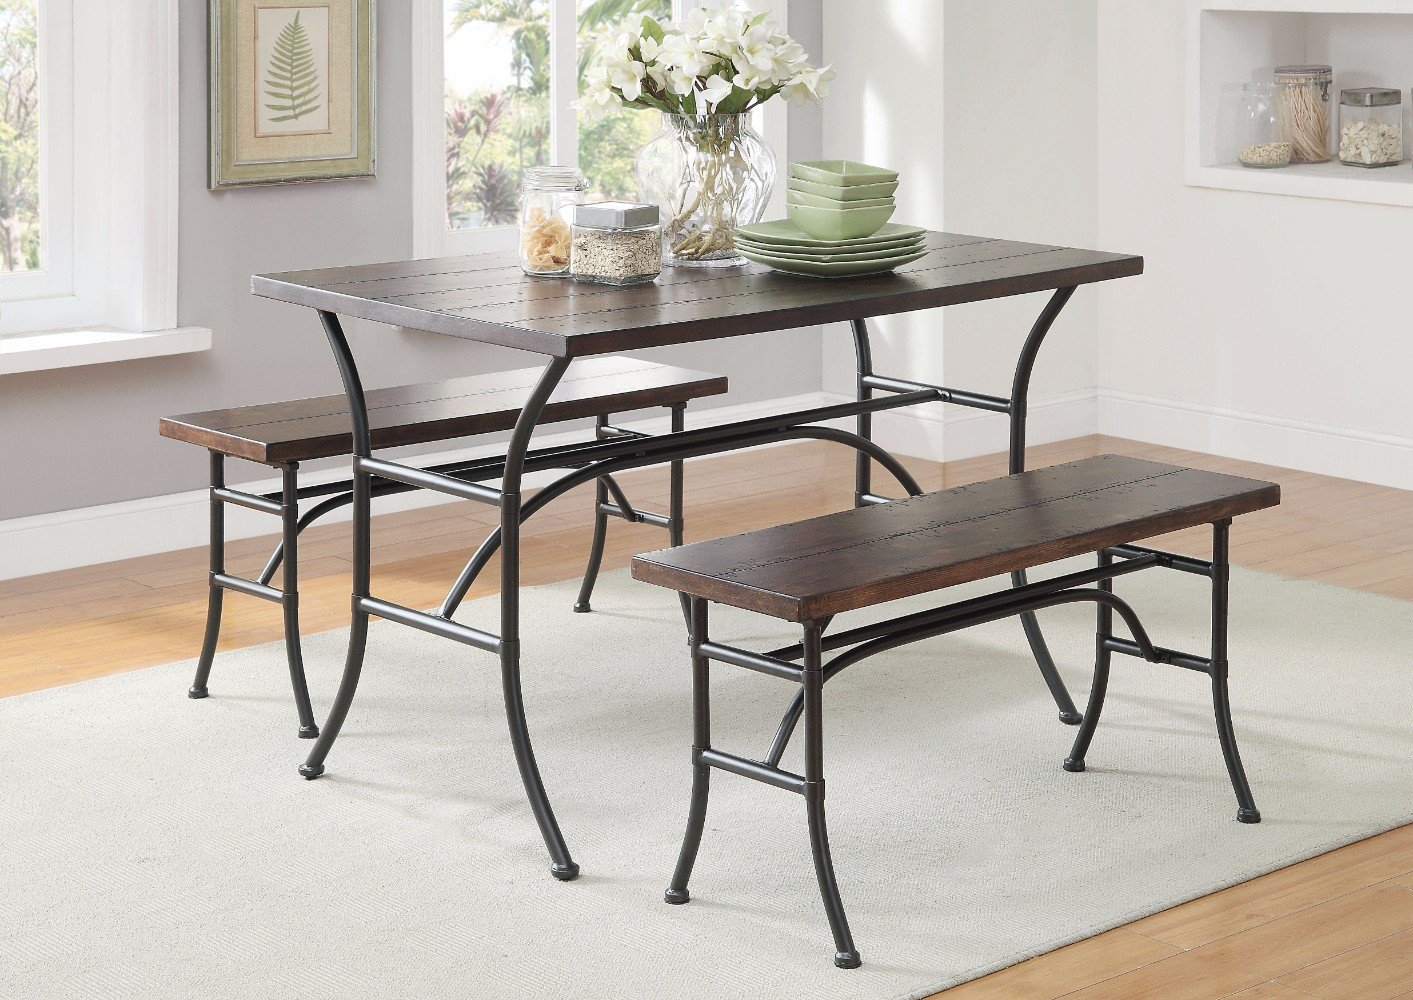 Brune Metal 3 Piece Dining Set Intended For Most Recently Released Kerley 4 Piece Dining Sets (Image 3 of 20)